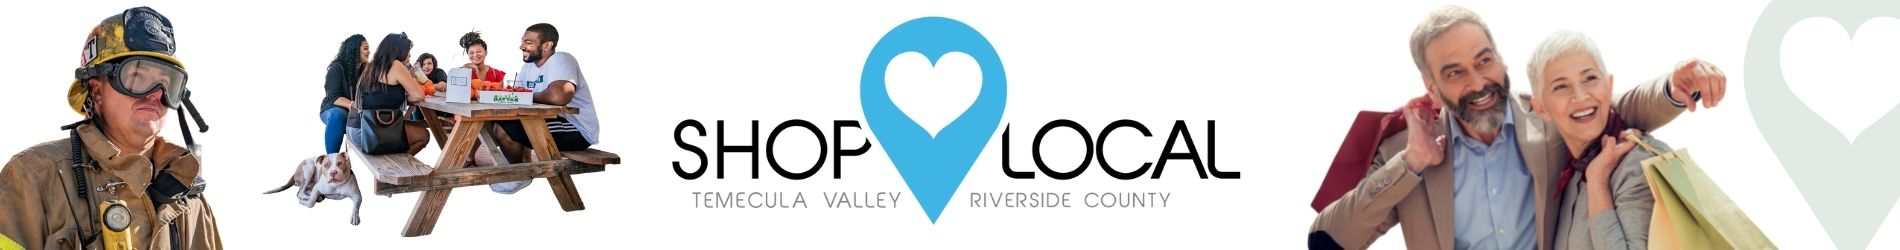 Shop Local Temecula Valley Web Banner